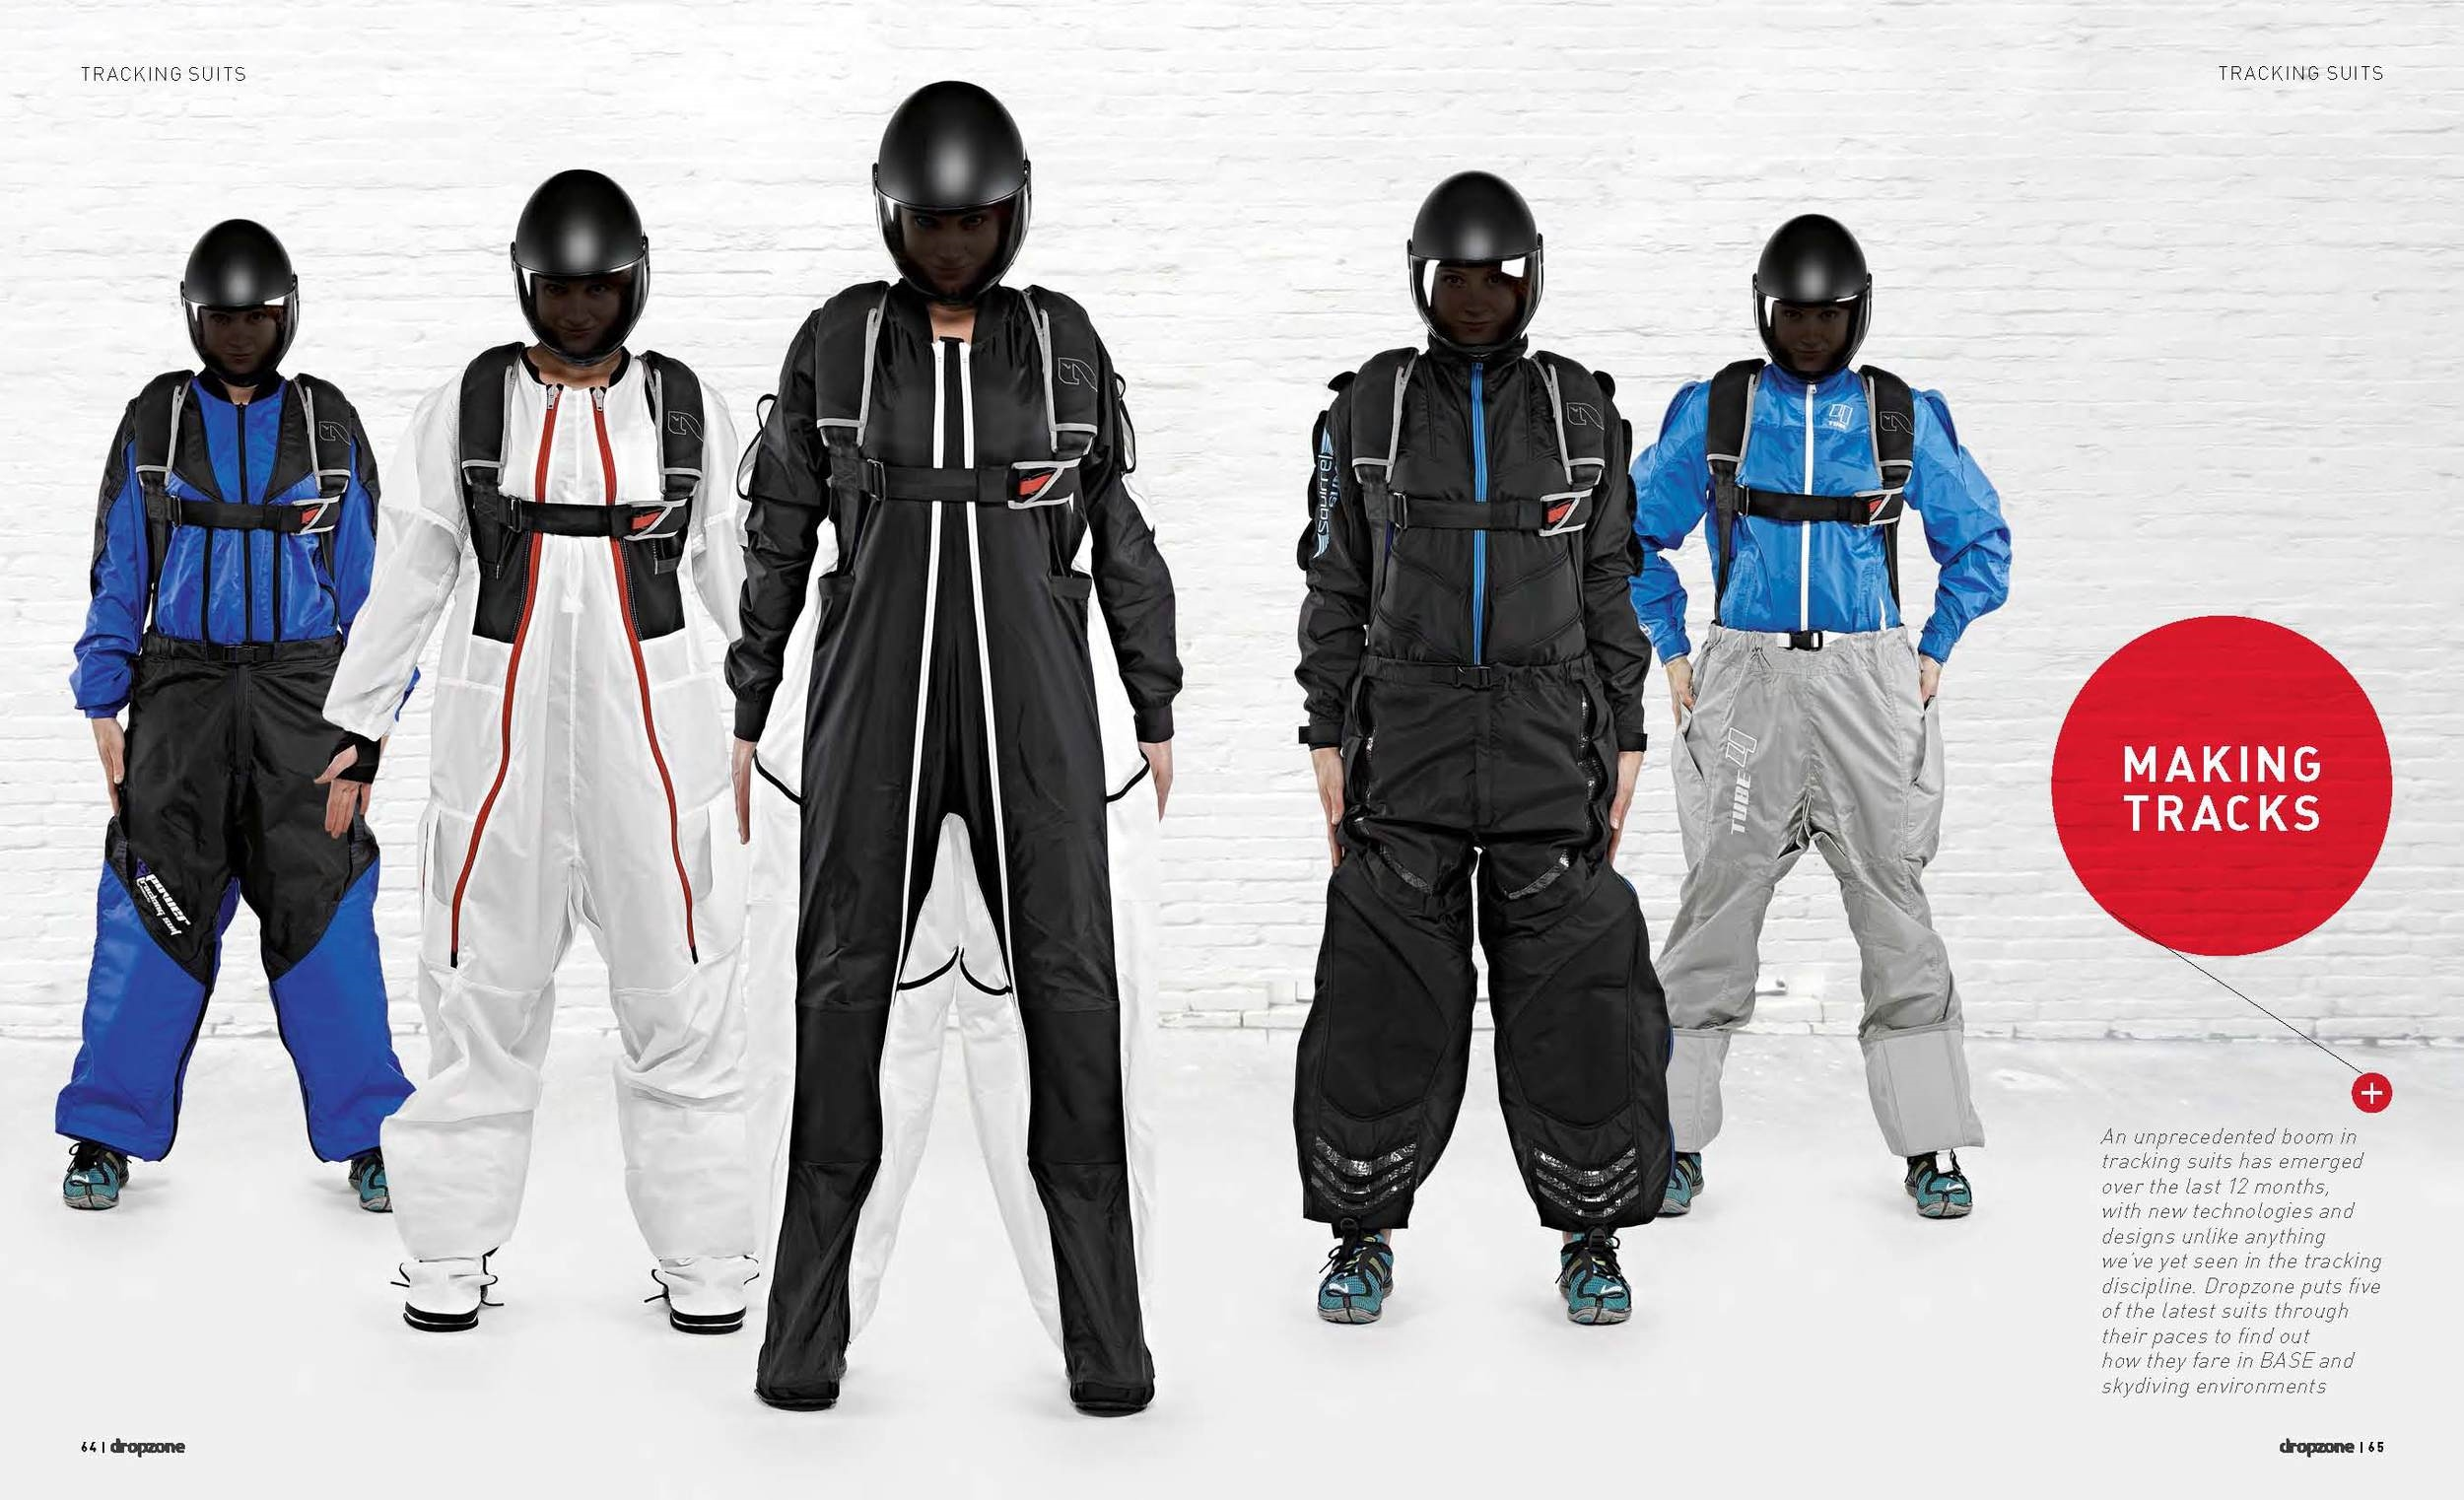 Making Tracks: Putting Five Tracking Suits Through Their Paces